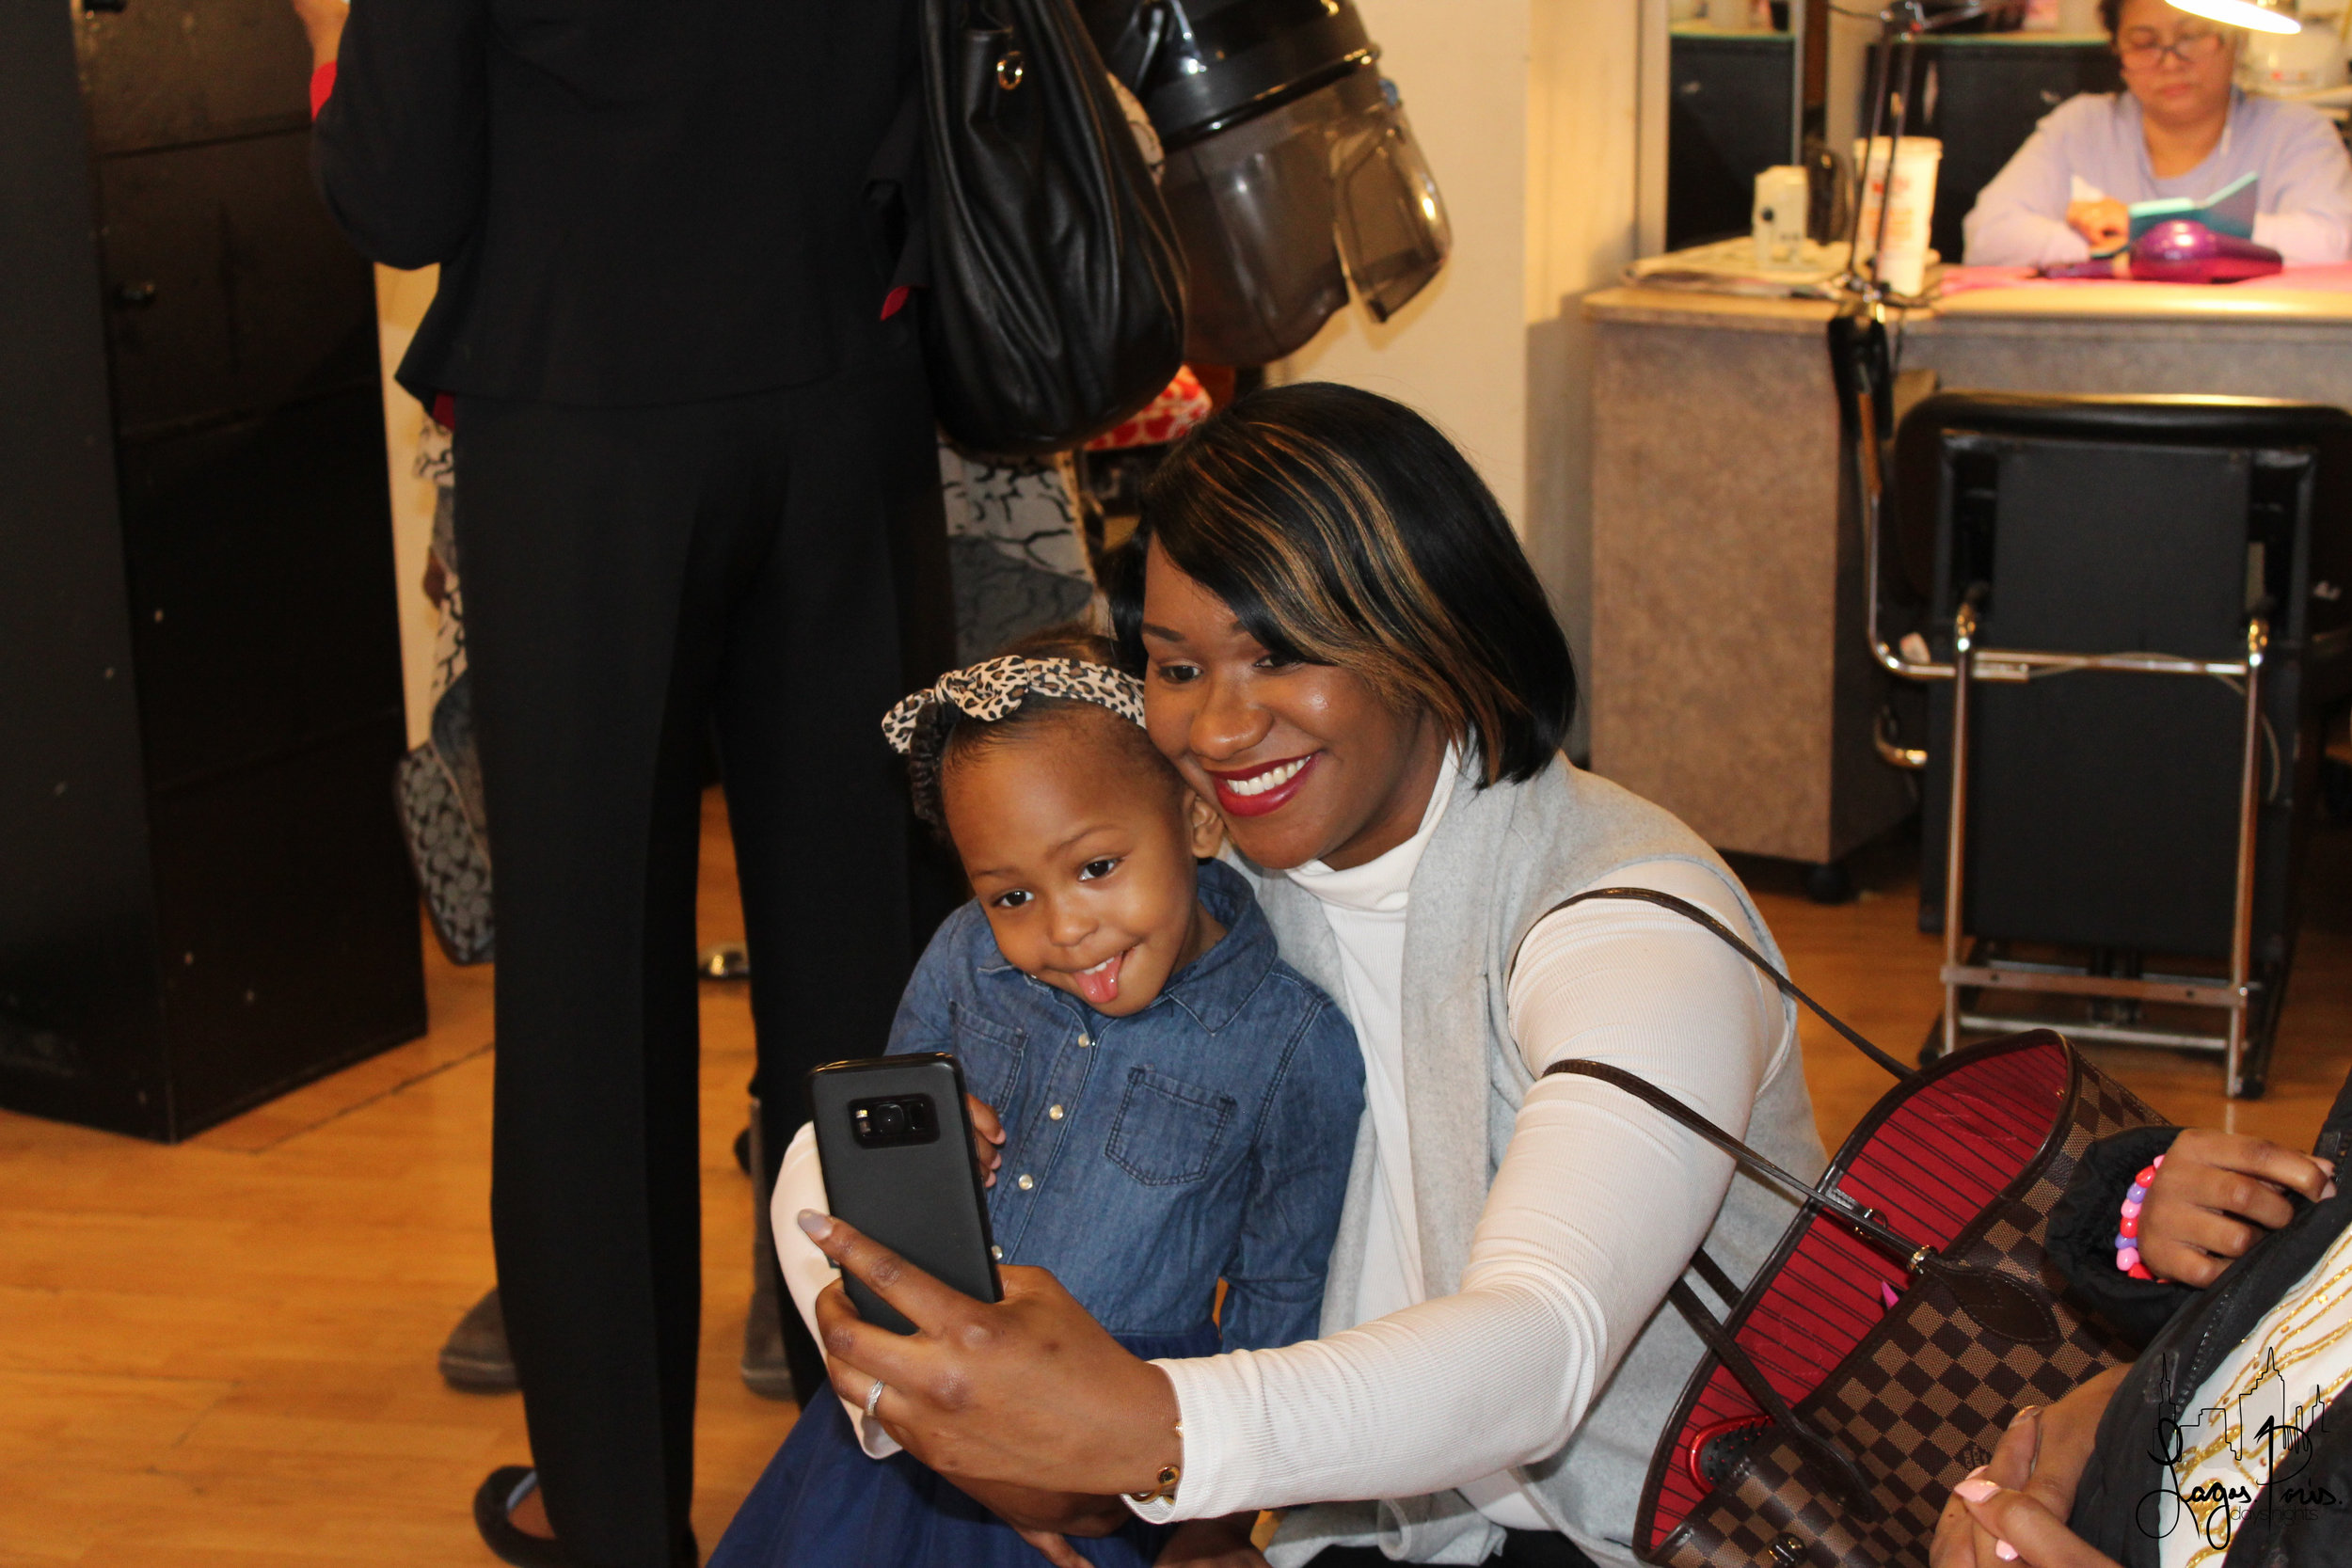 A mother and daughter, embody the spirit of the event with a fun selfie!